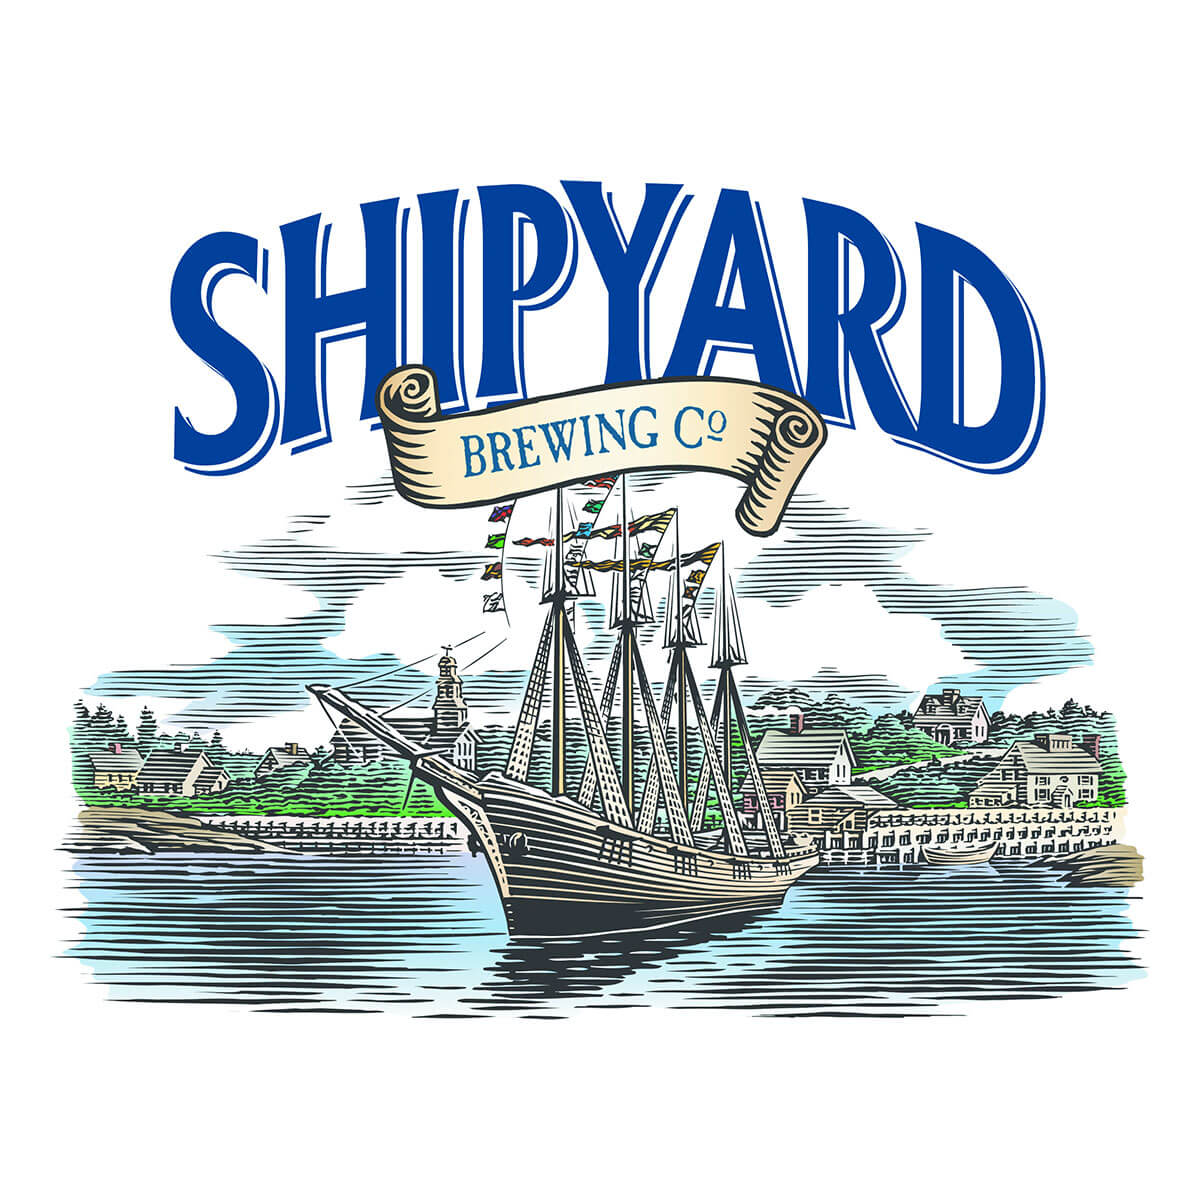 Shipyard Brewing Co. Logo